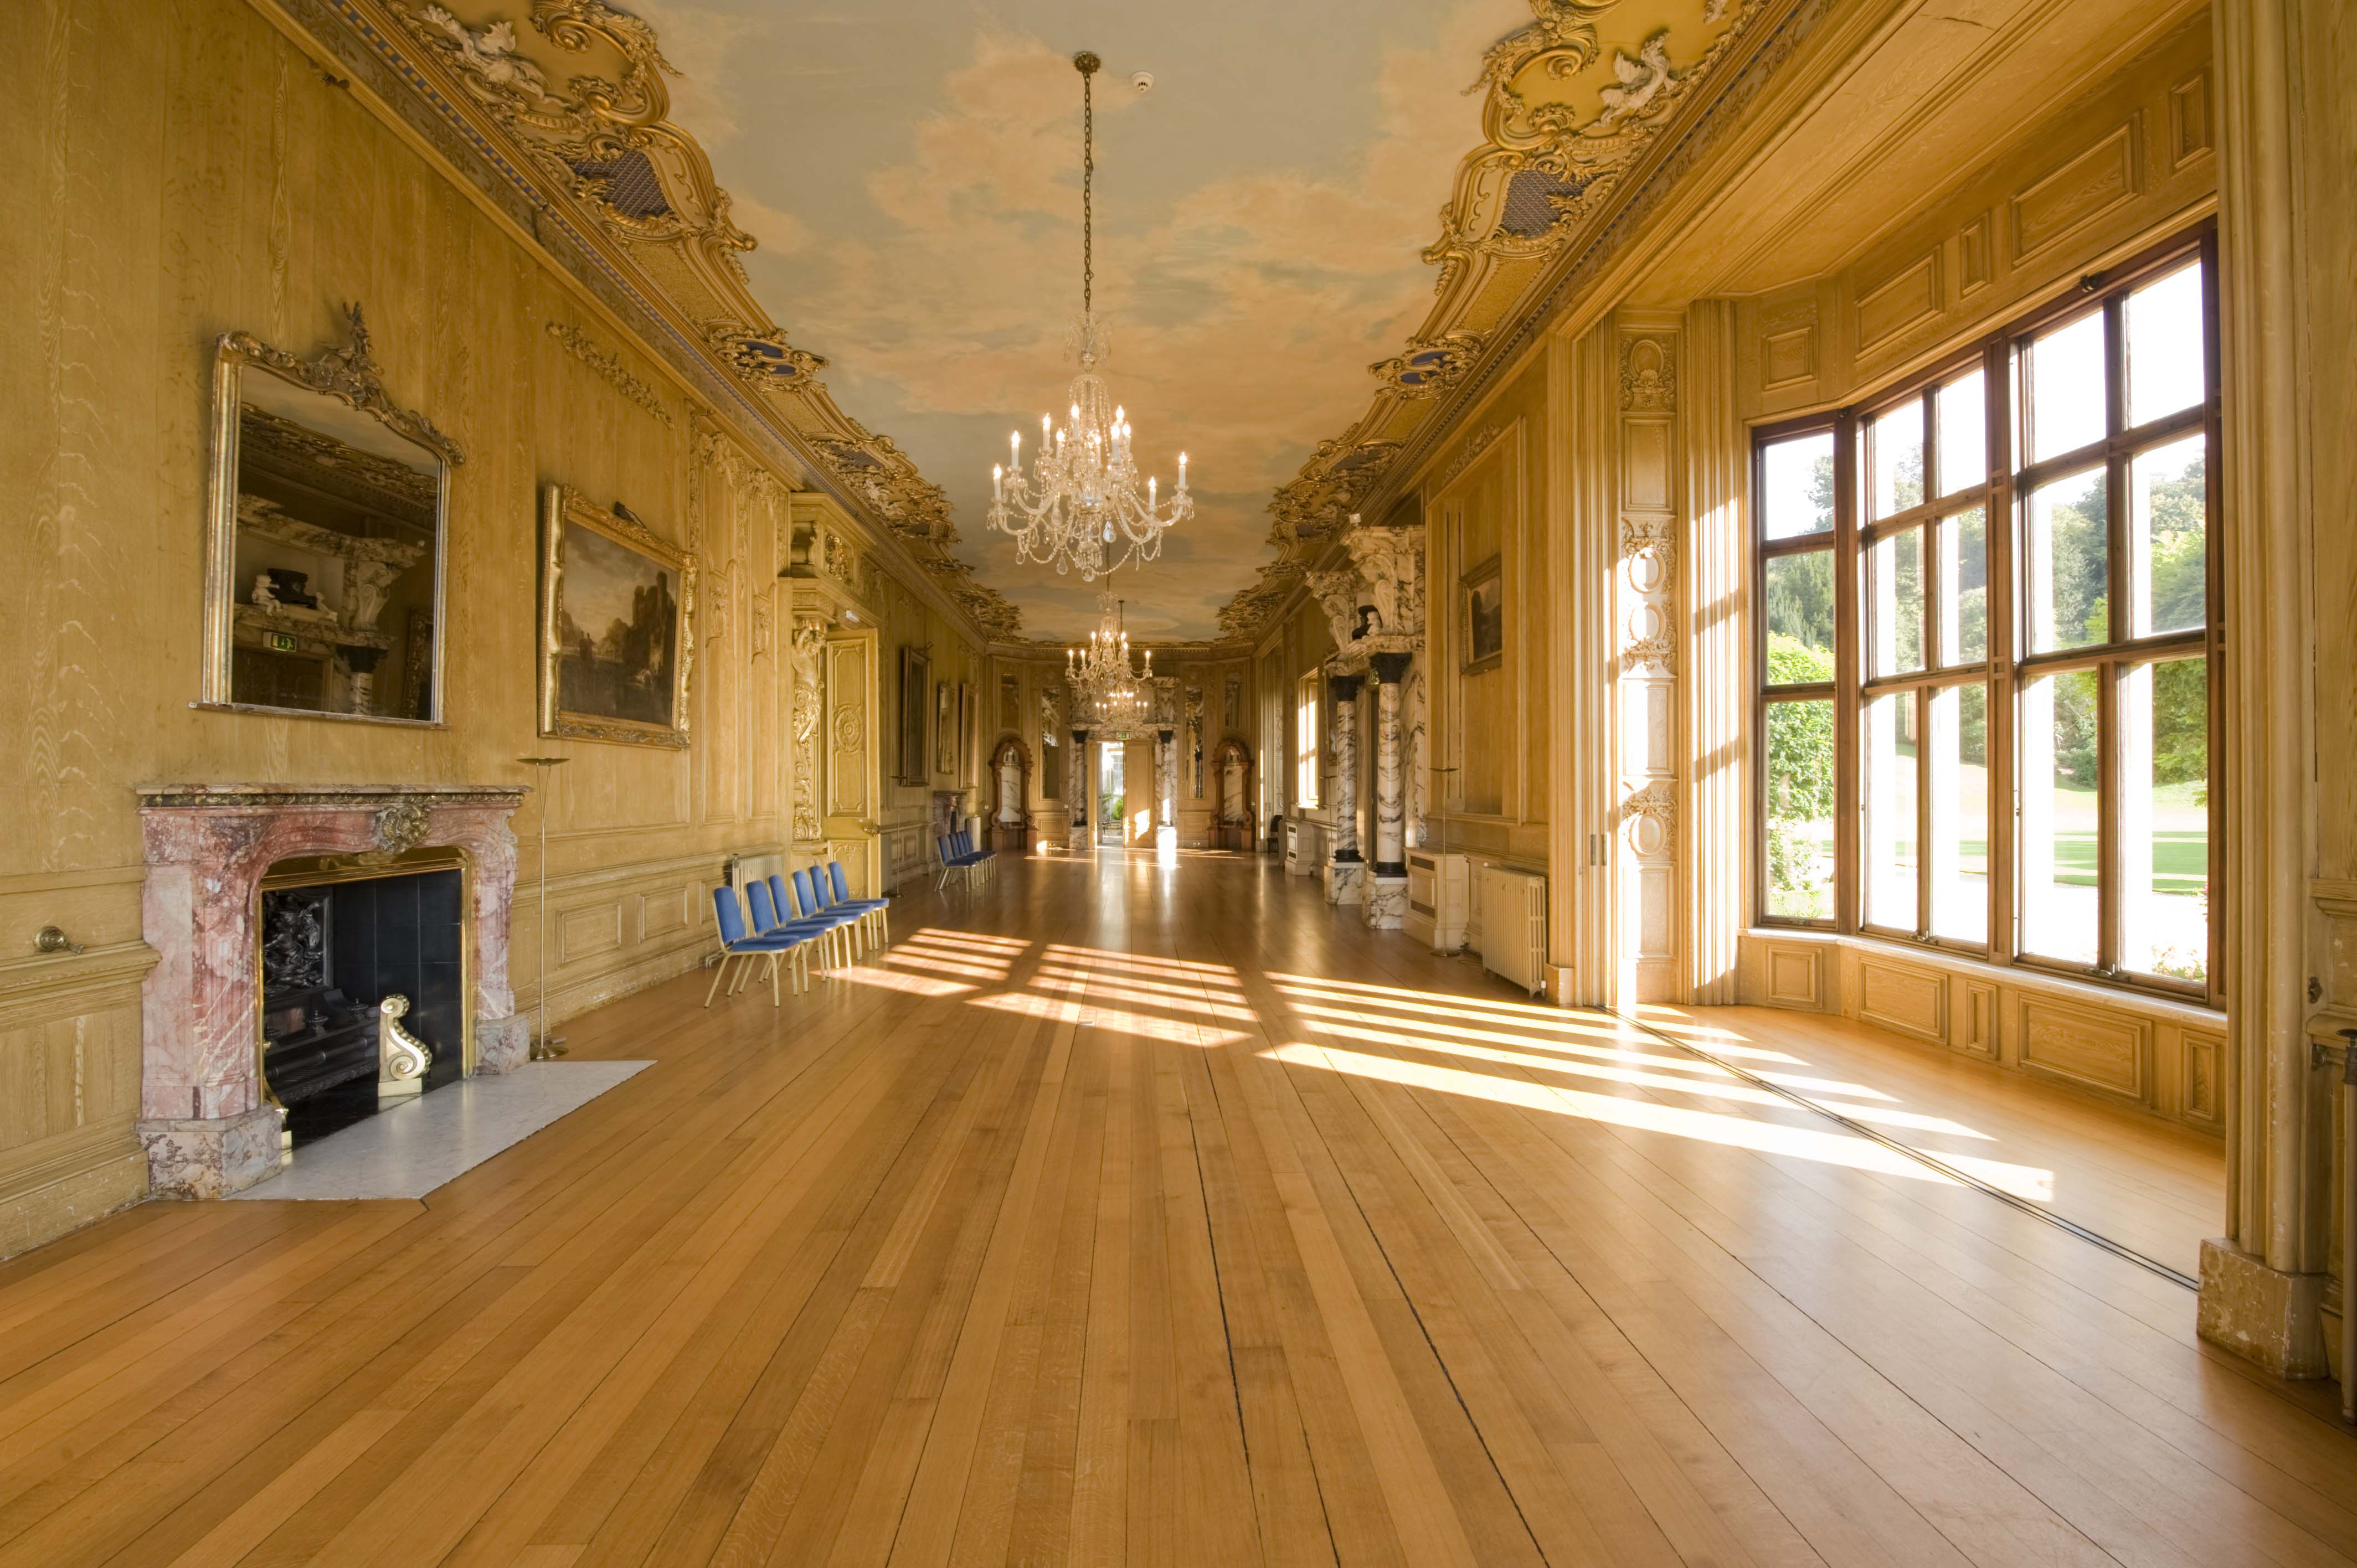 Long Gallery Harlaxton Manor Archives